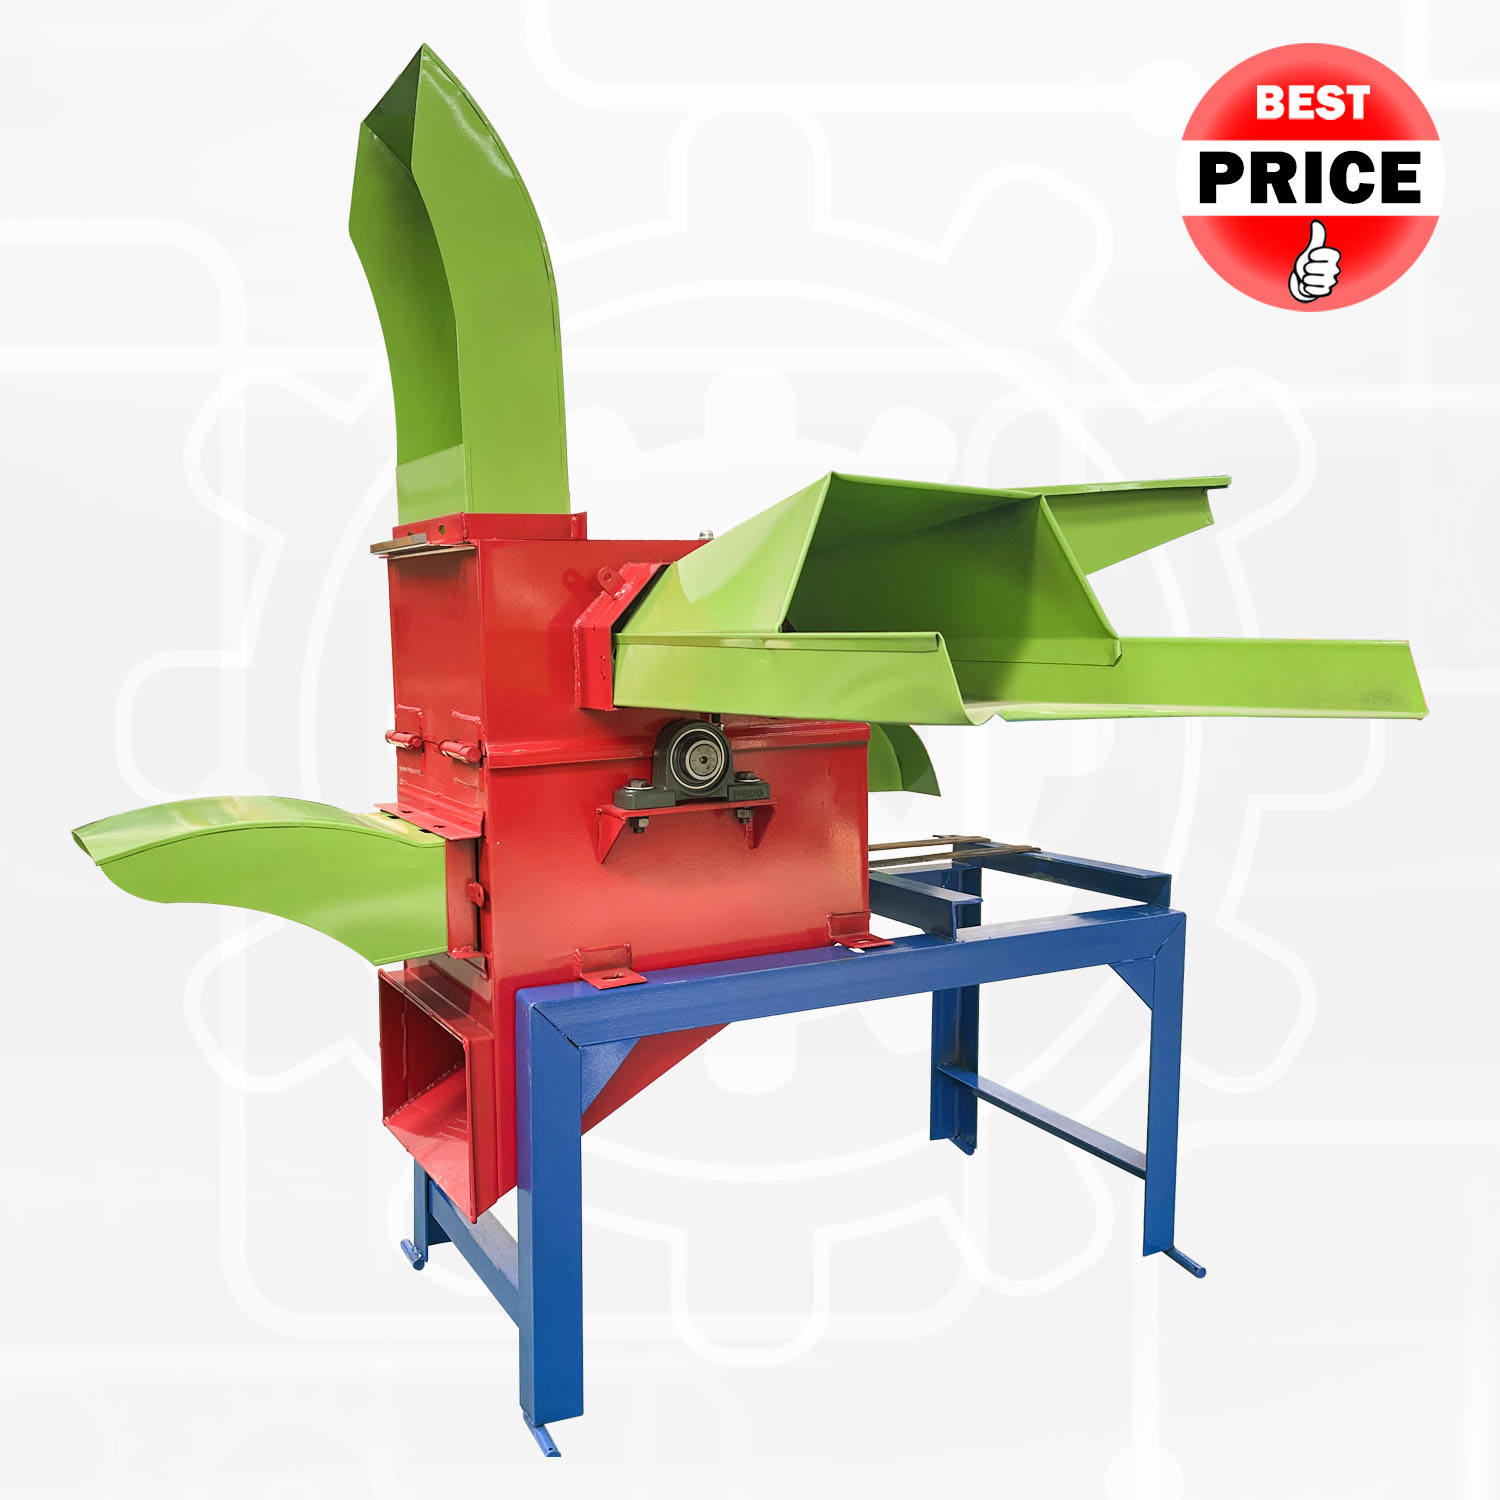 Animal Feed Corn Silage Grass Agricultural Mini Hay Chaff Cutting Machine Of Chaff Cutter Machine Price List In Kenya and India